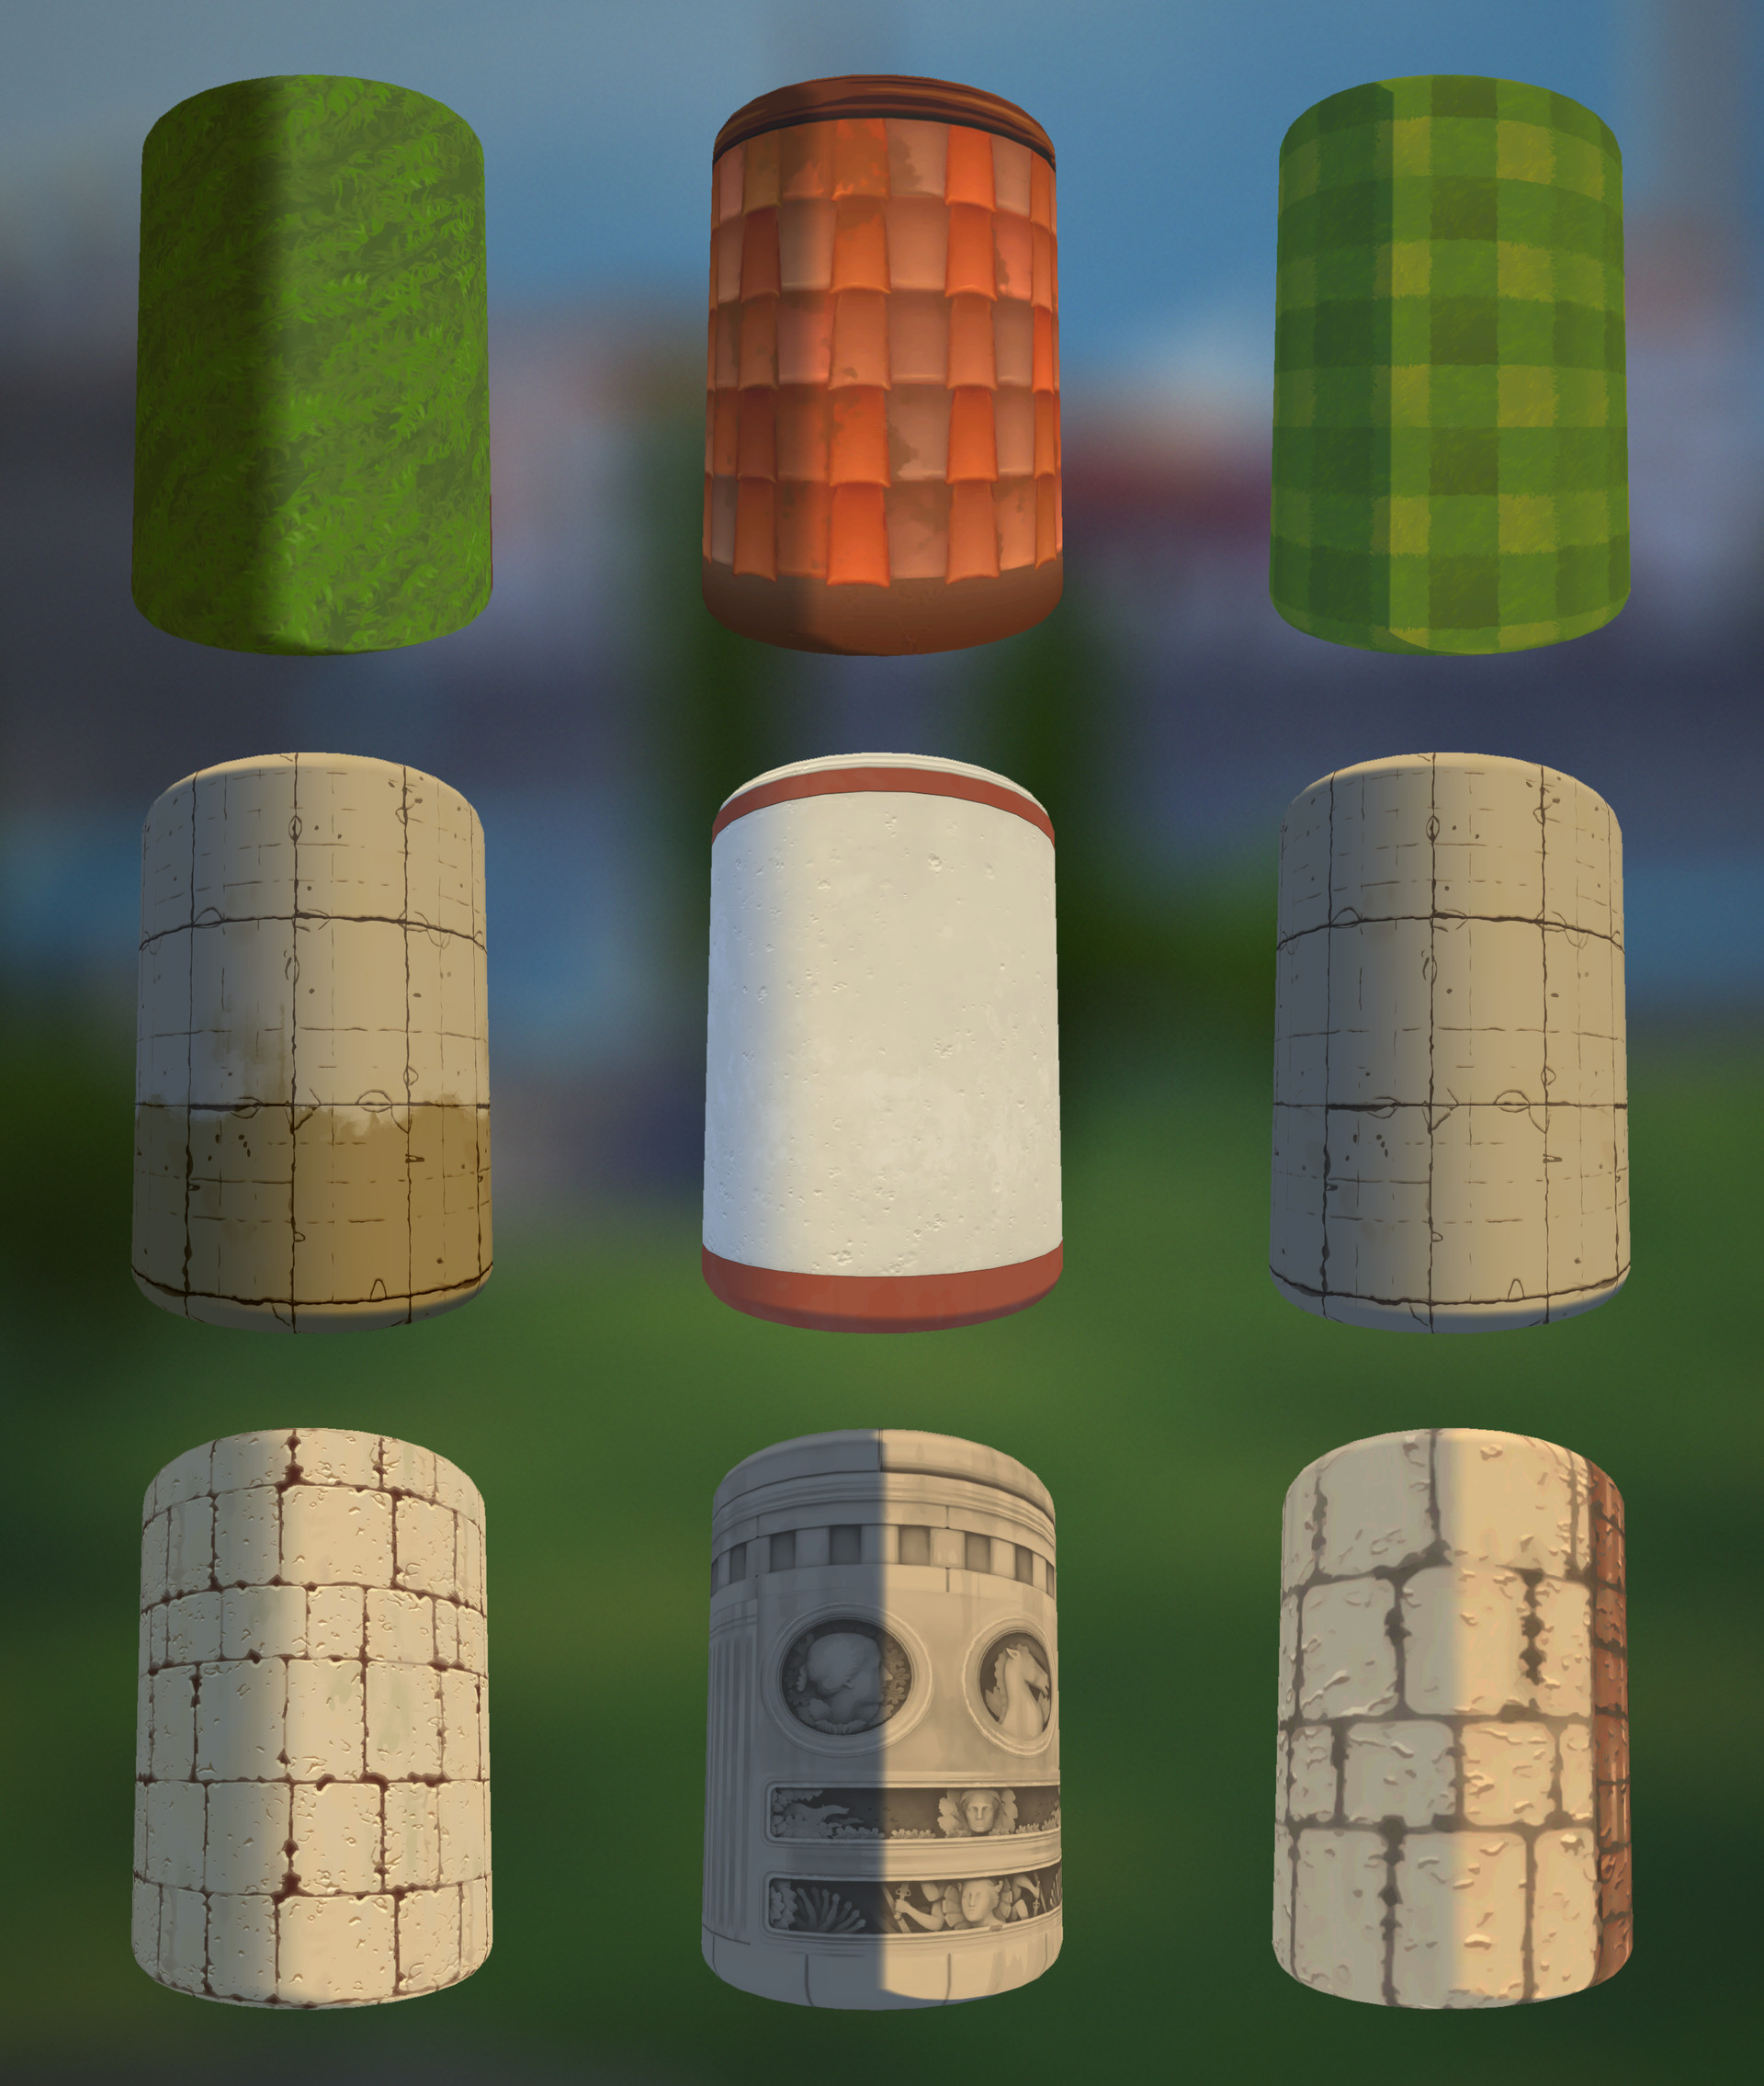 All textures were created in Substance Designer for fast iteration. I was able to leverage pieces of graphs across multiple textures to economize production. They all use a custom shader I wrote in Amplify for quick iteration on stylized mood.